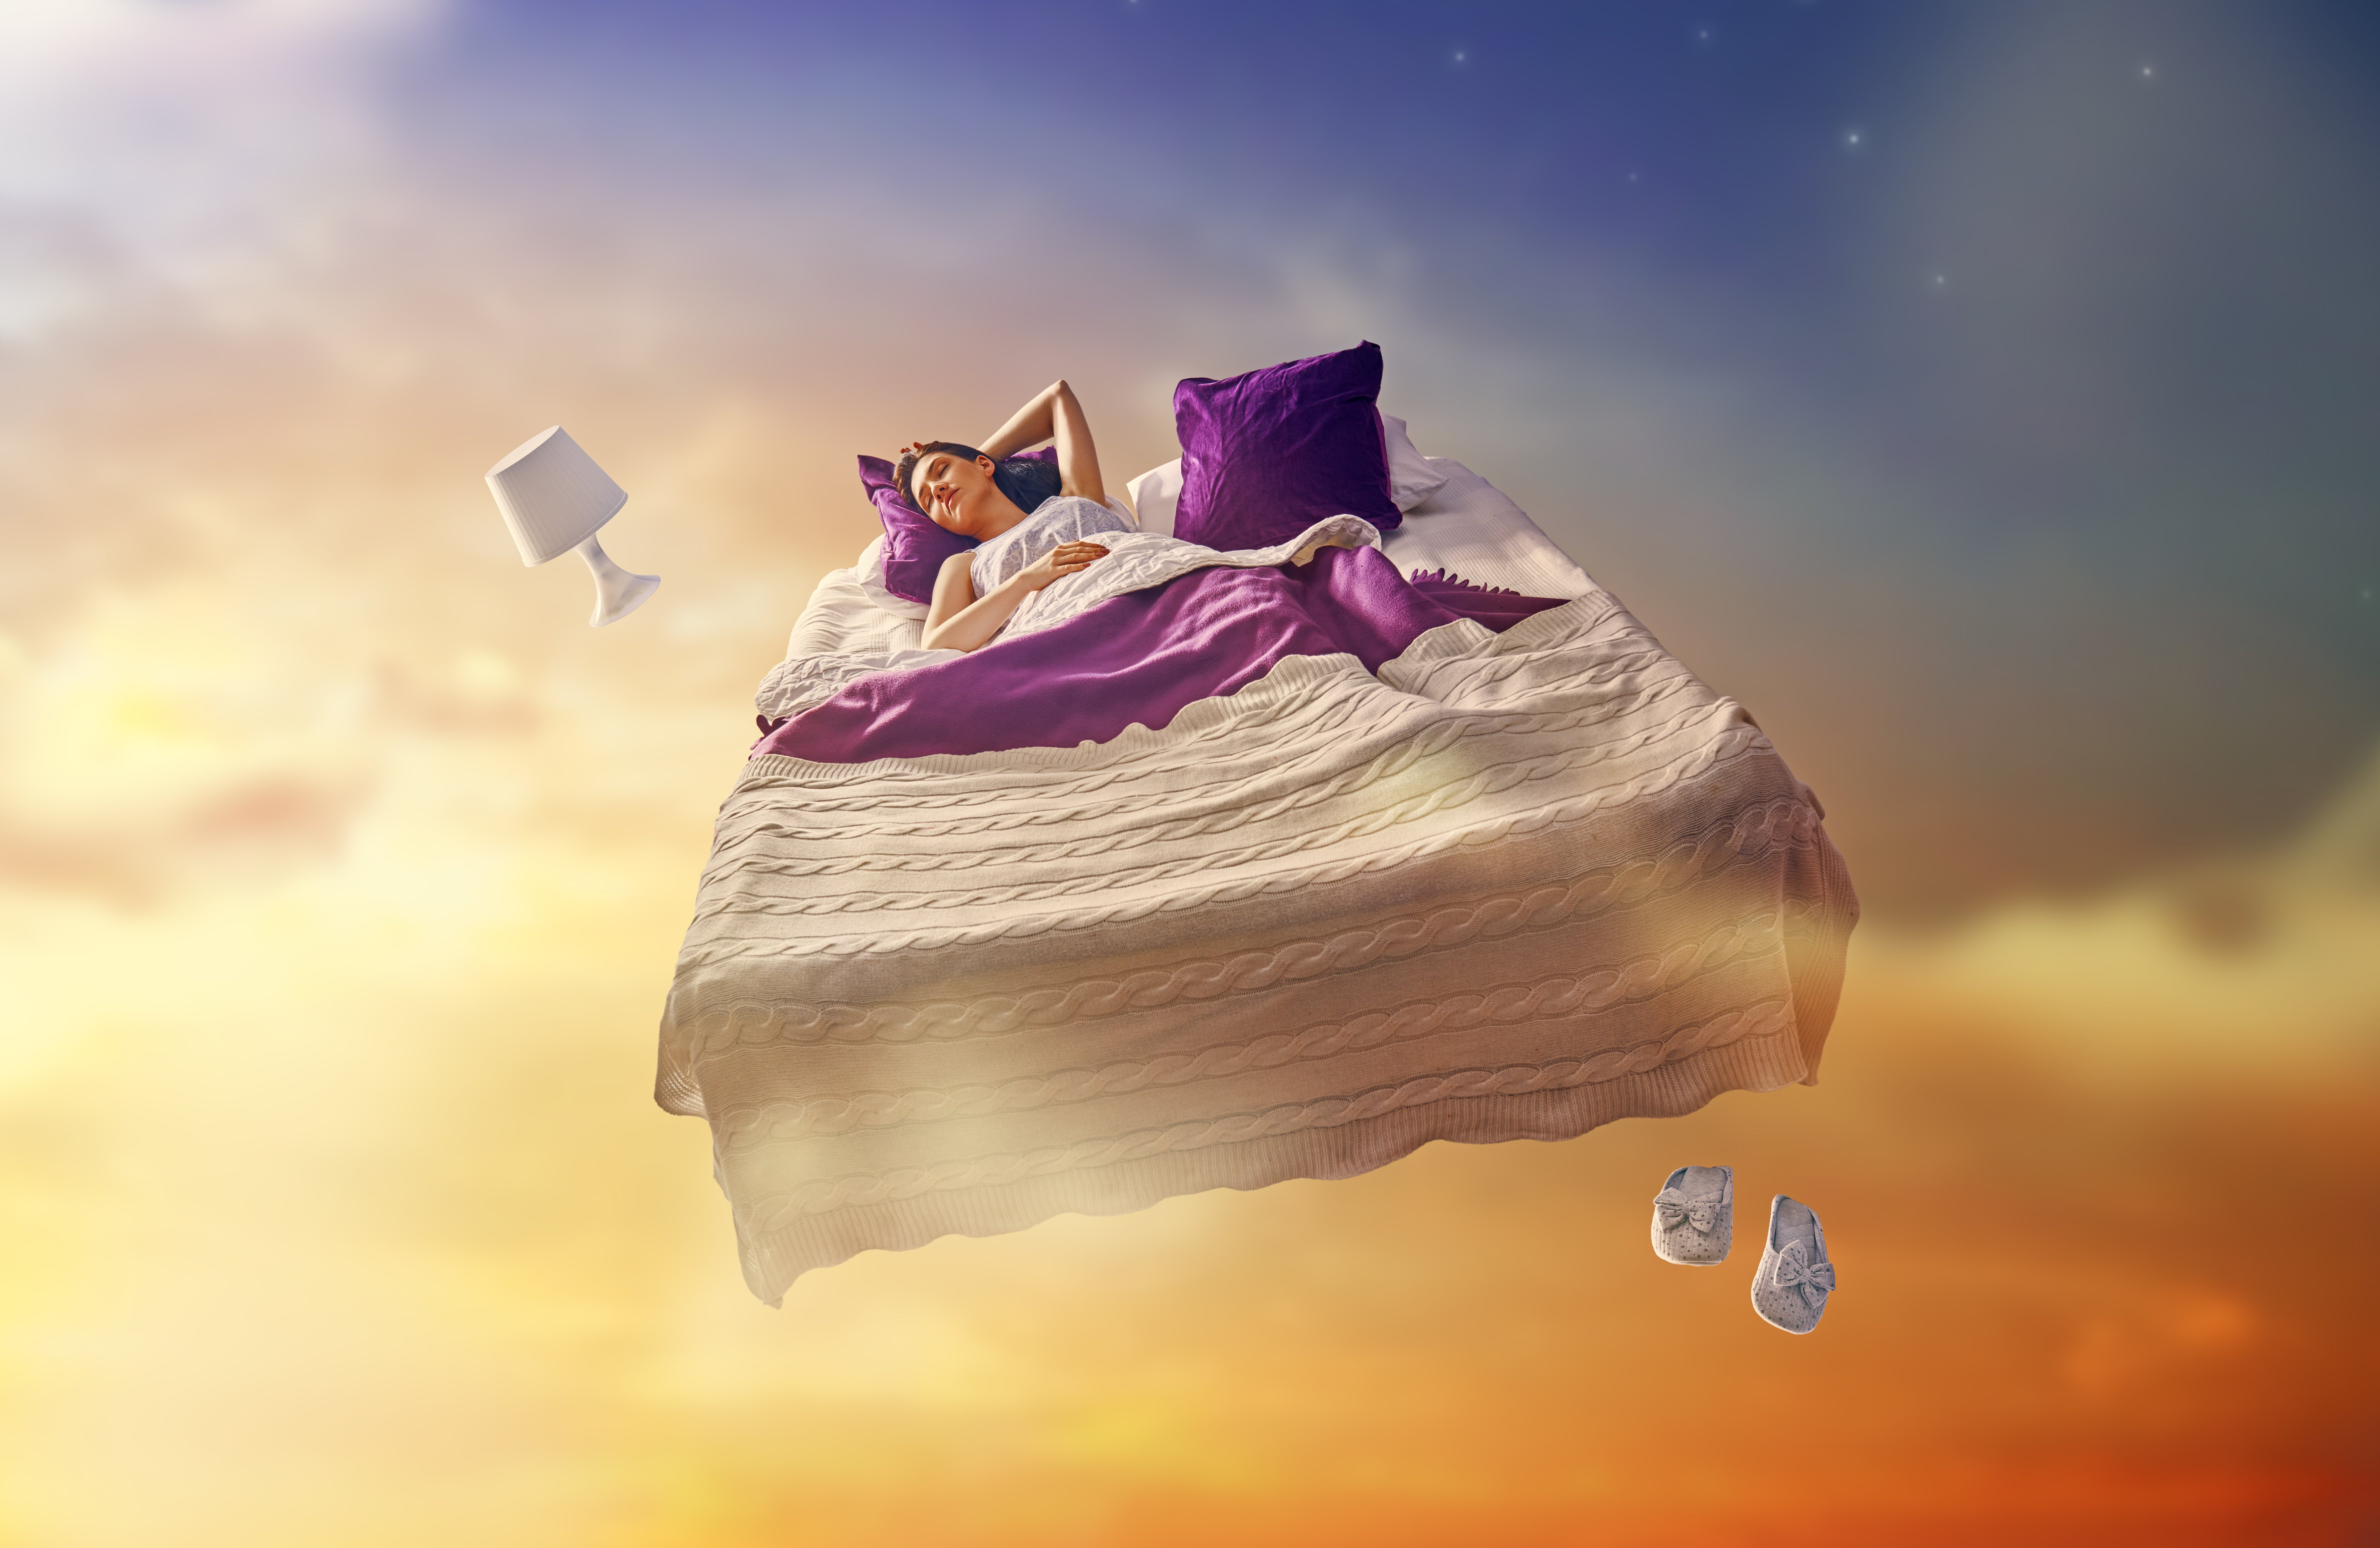 Person dreaming   Source: Shutterstock